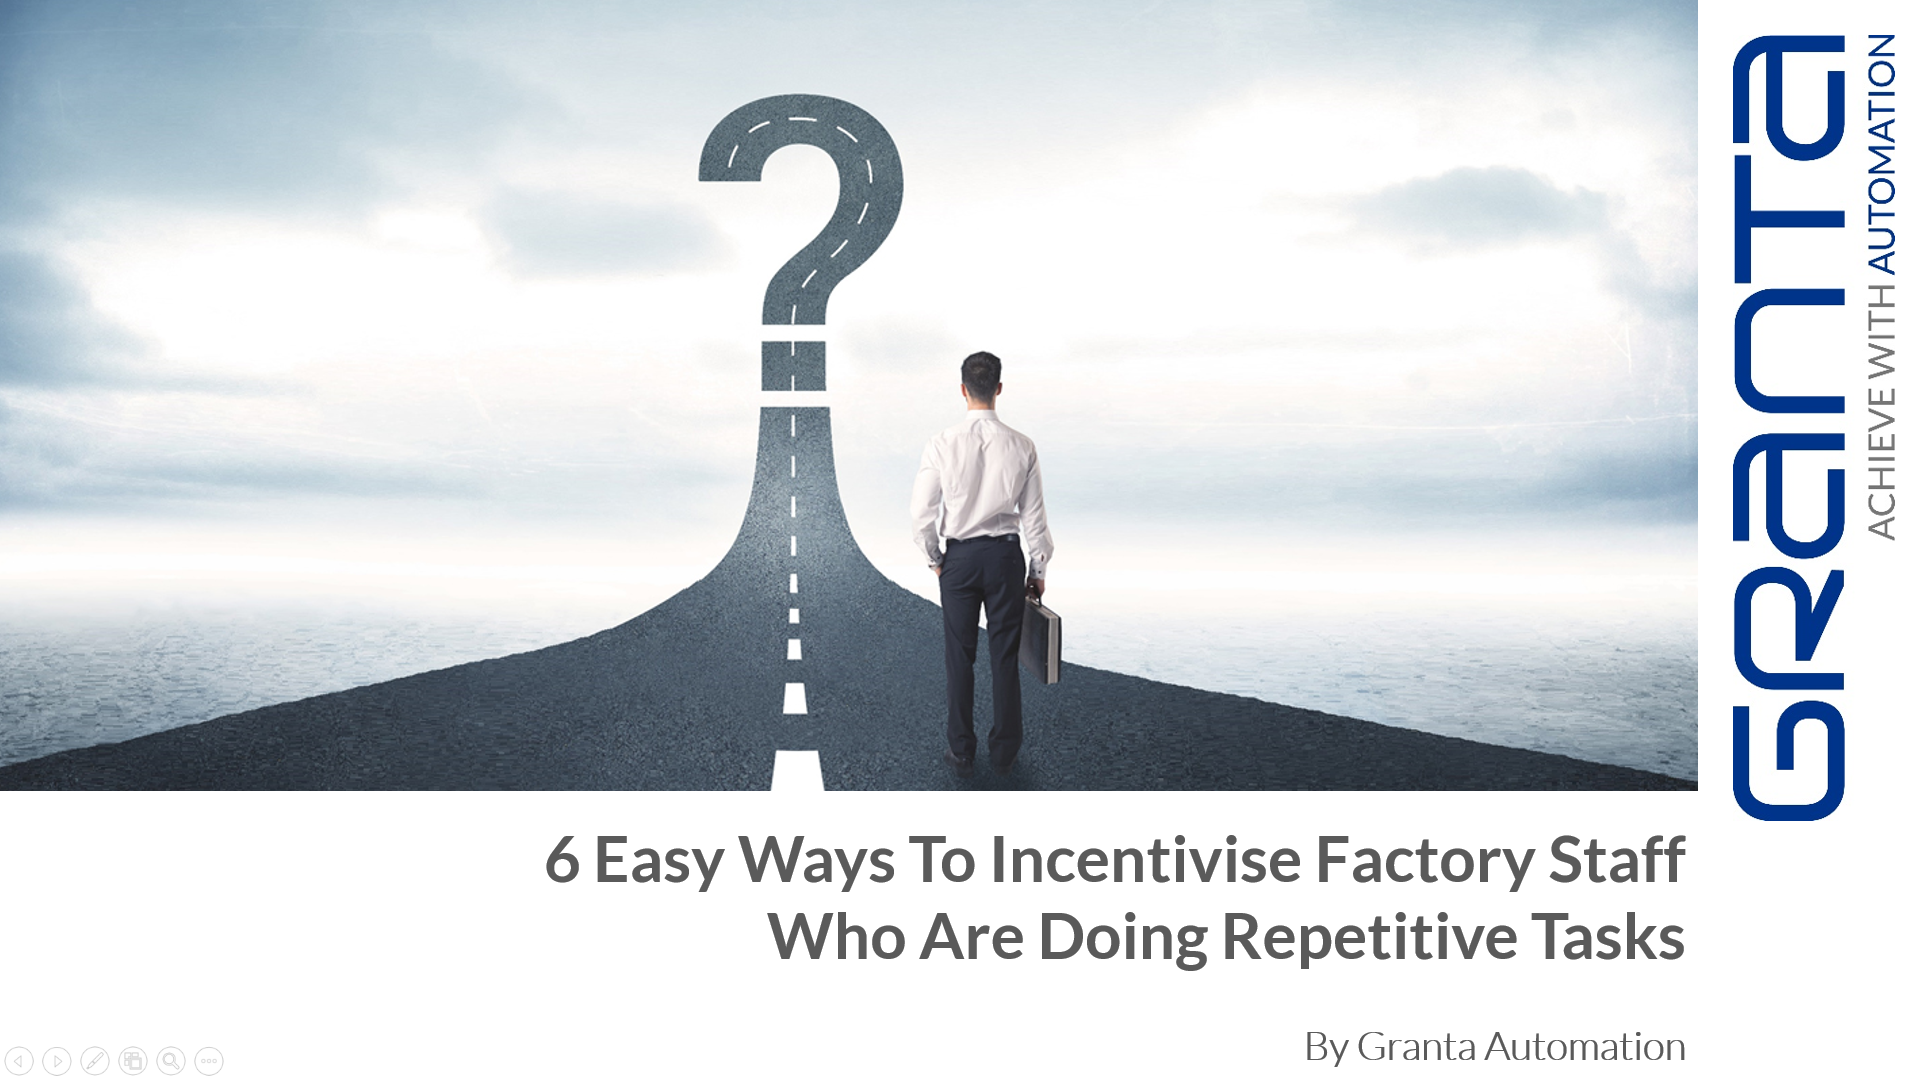 6 Easy Ways To Incentivise Factory Staff